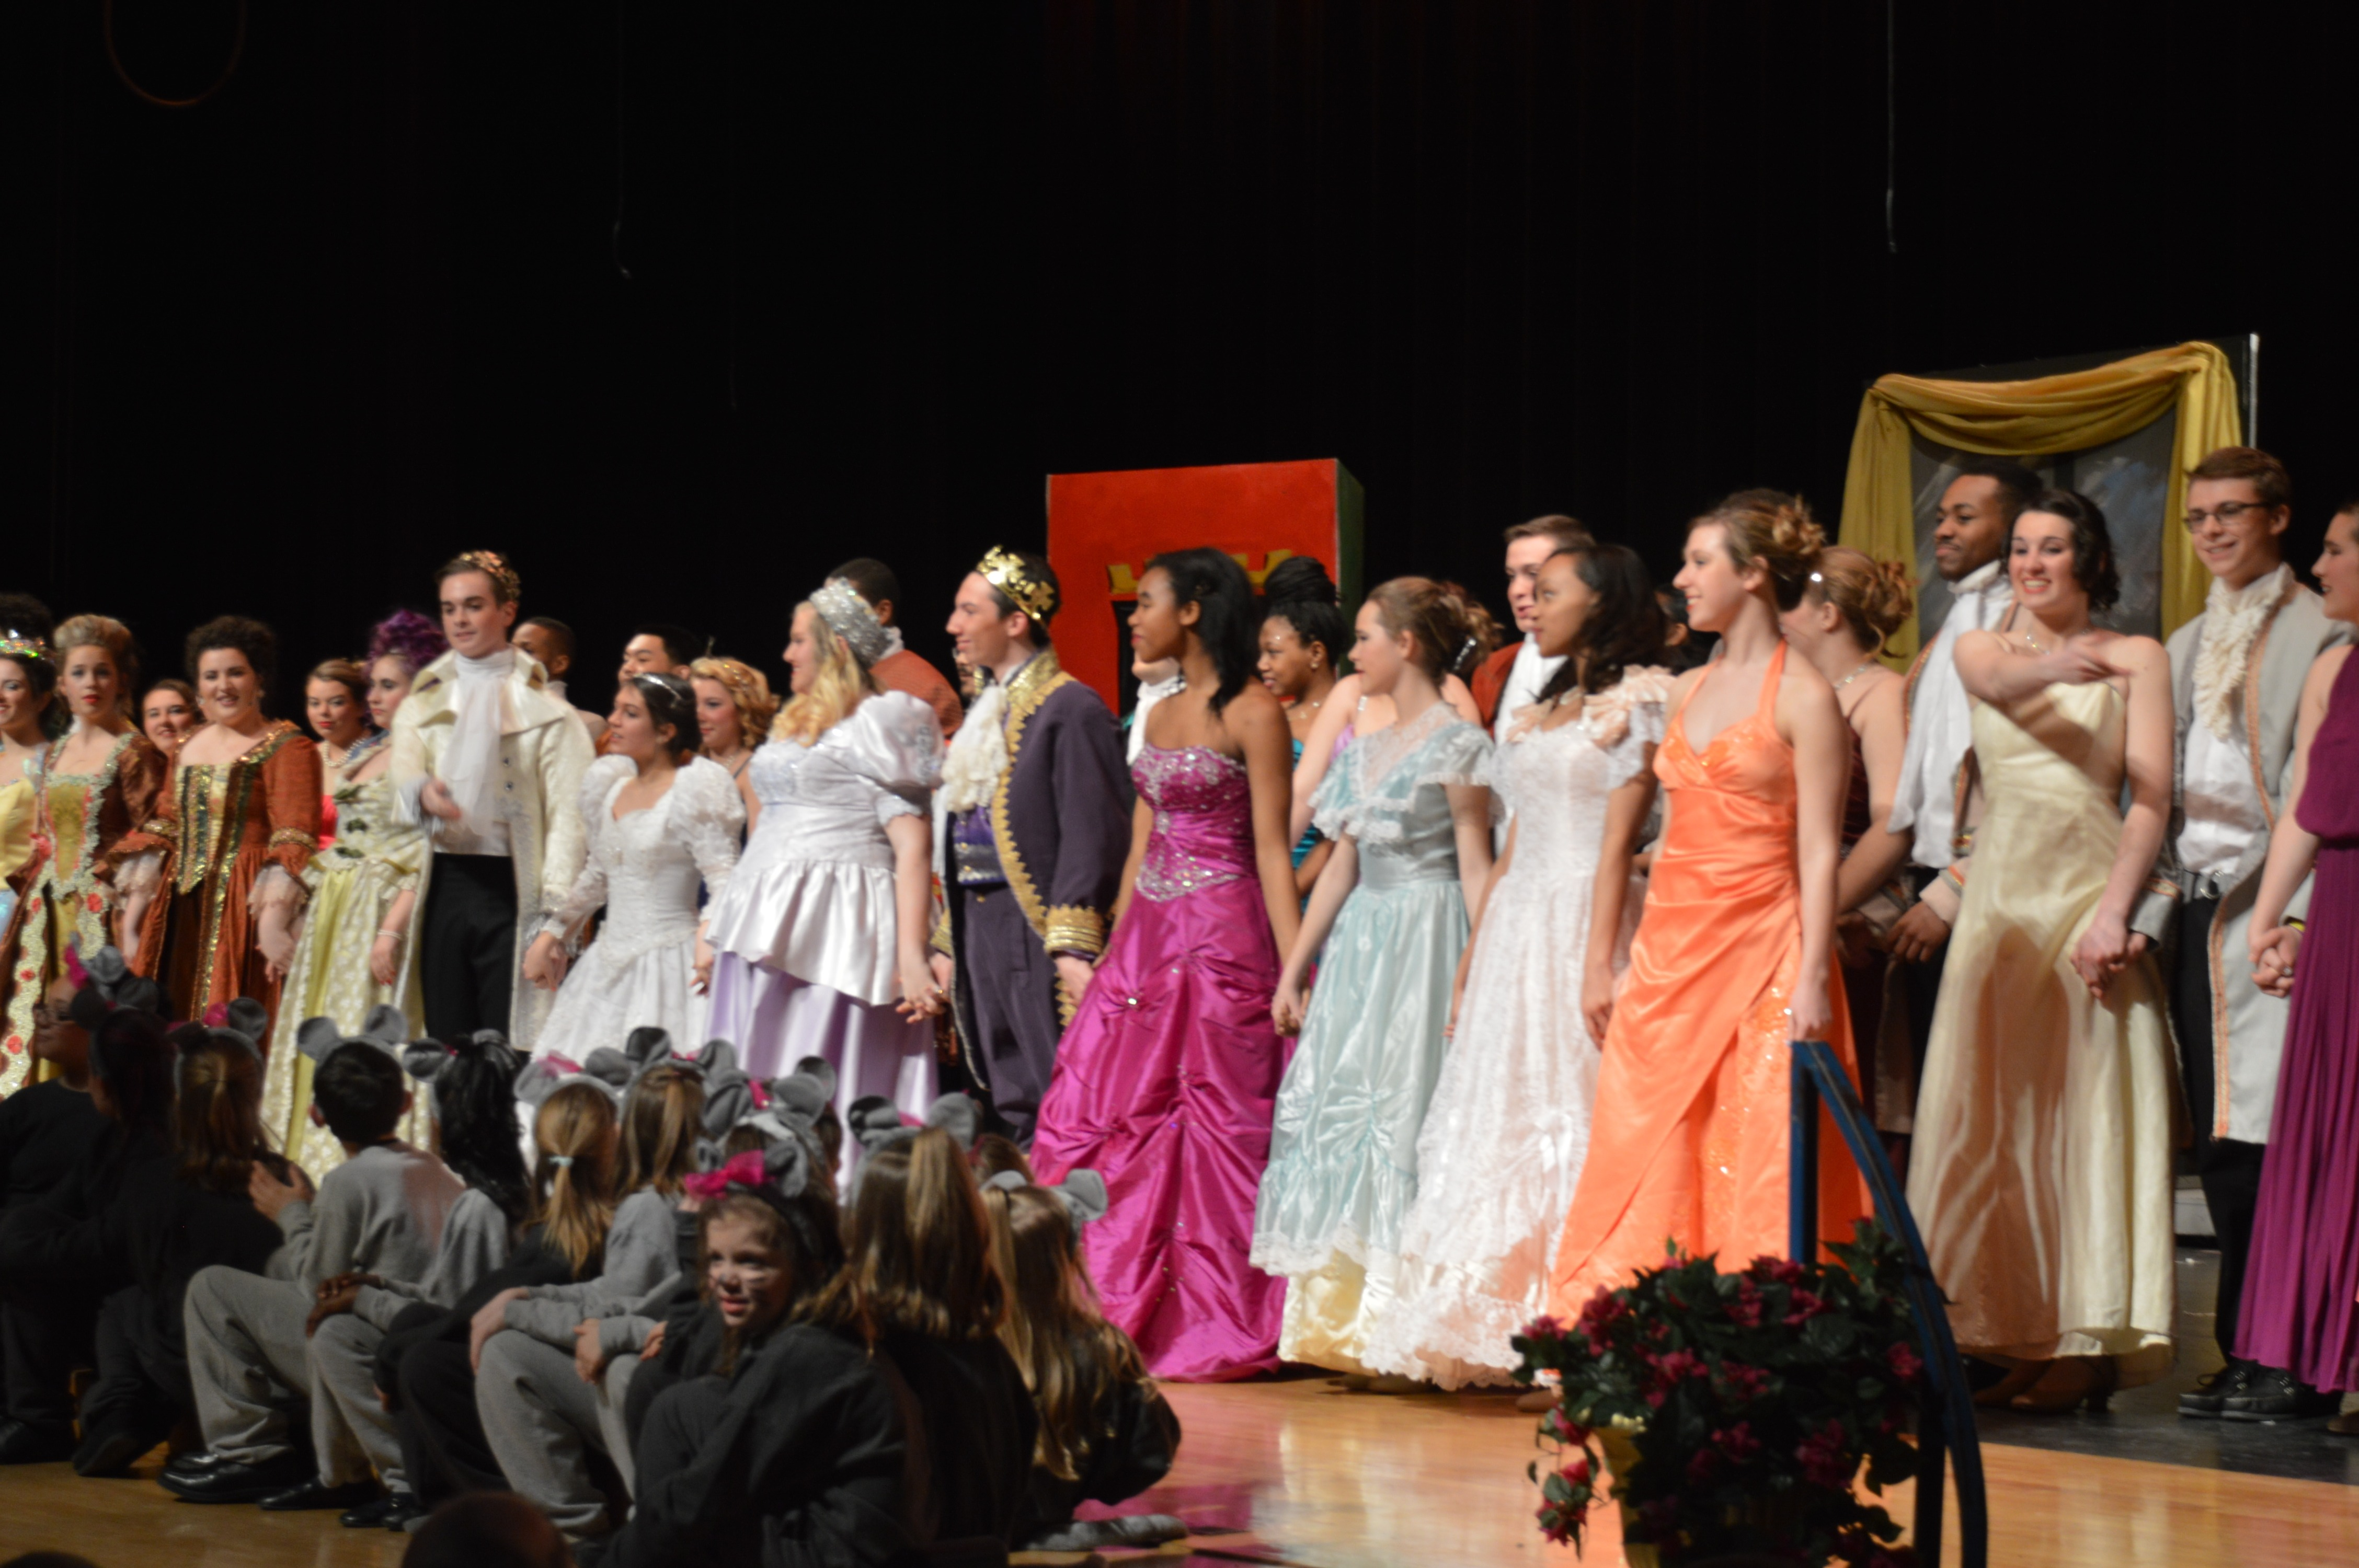 Actors and Featured Dancers take their final bow after the show.